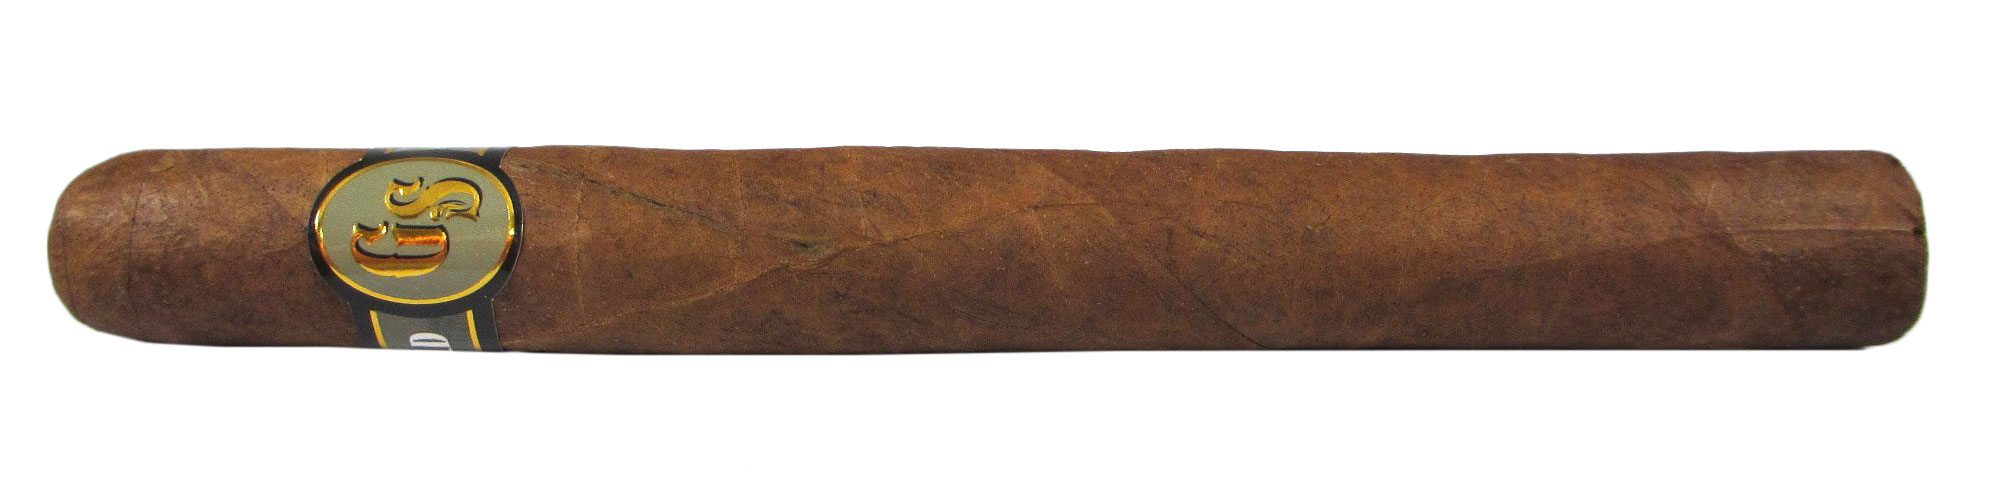 Blind Cigar Review – Revisited: Royal Gold | Gold Strike Churchill